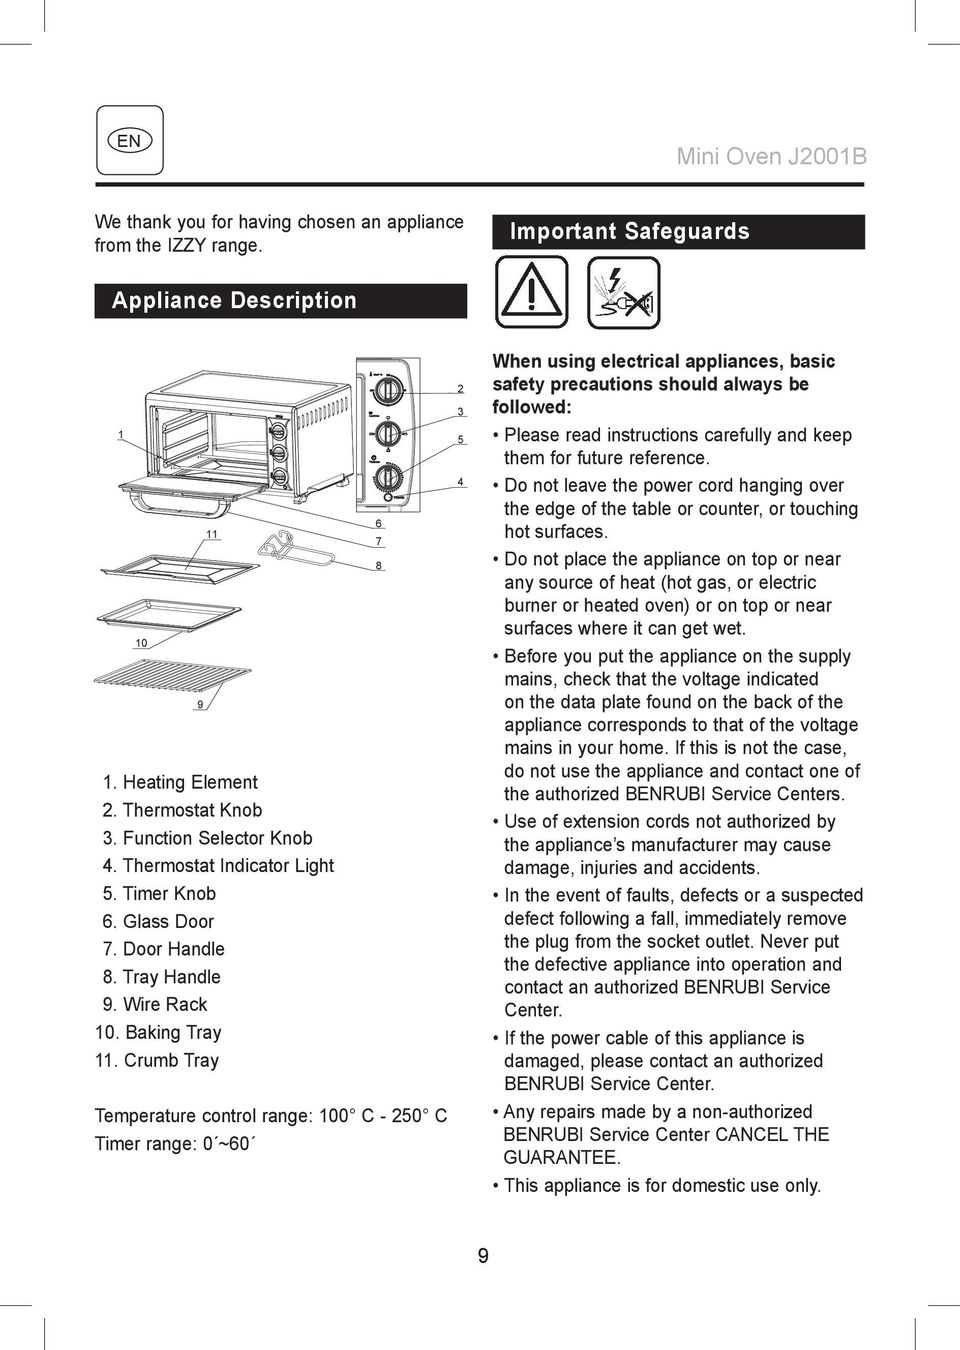 Crumb Tray Temperature control range: 100 C - 250 C Timer range: 0 ~60 2 3 5 4 When using electrical appliances, basic safety precautions should always be followed: Please read instructions carefully